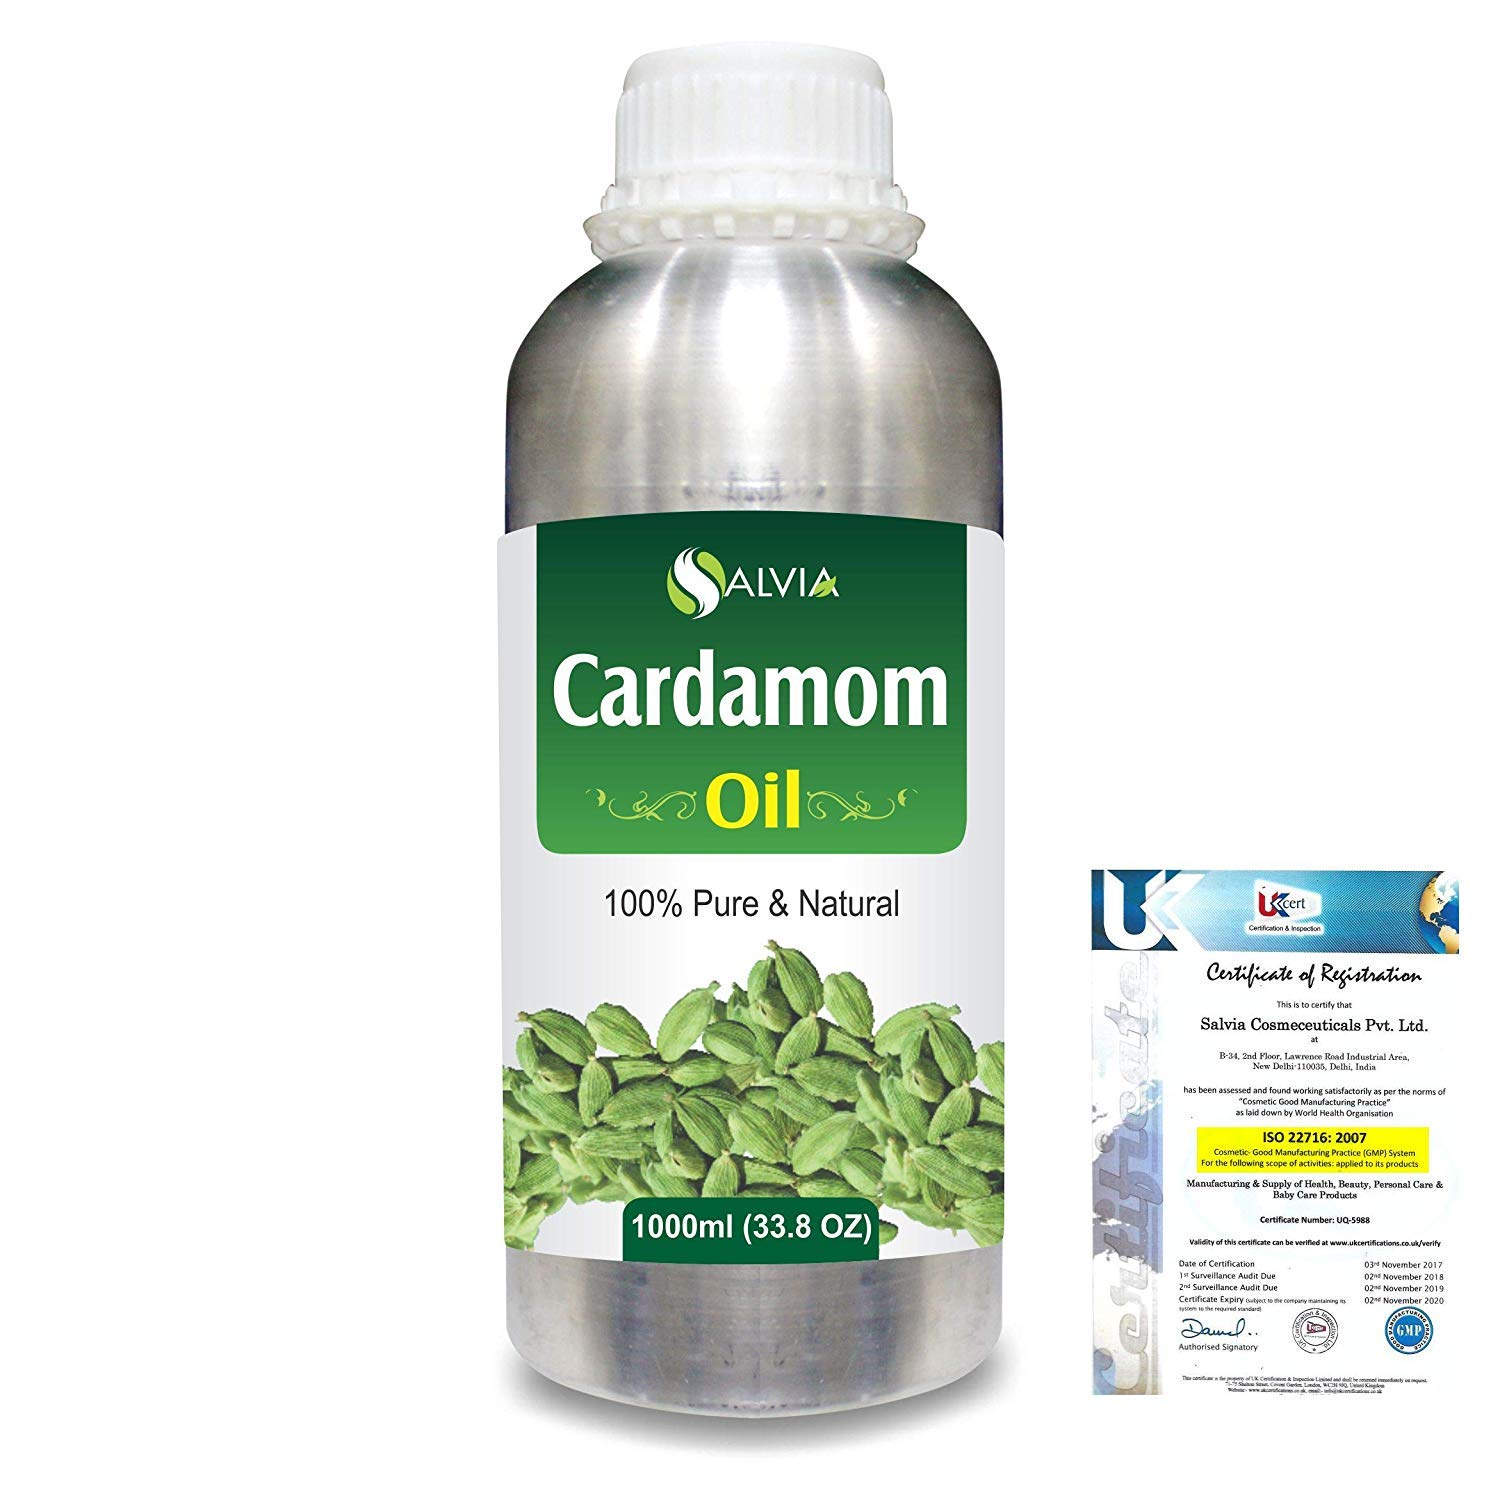 Cardamom (Elettaria cardamomum) Essential Aromatherapy Therapeutic Uncut Undiluted Oil 1000ml/33.8fl oz Express Shipping by Salvia (Image #1)